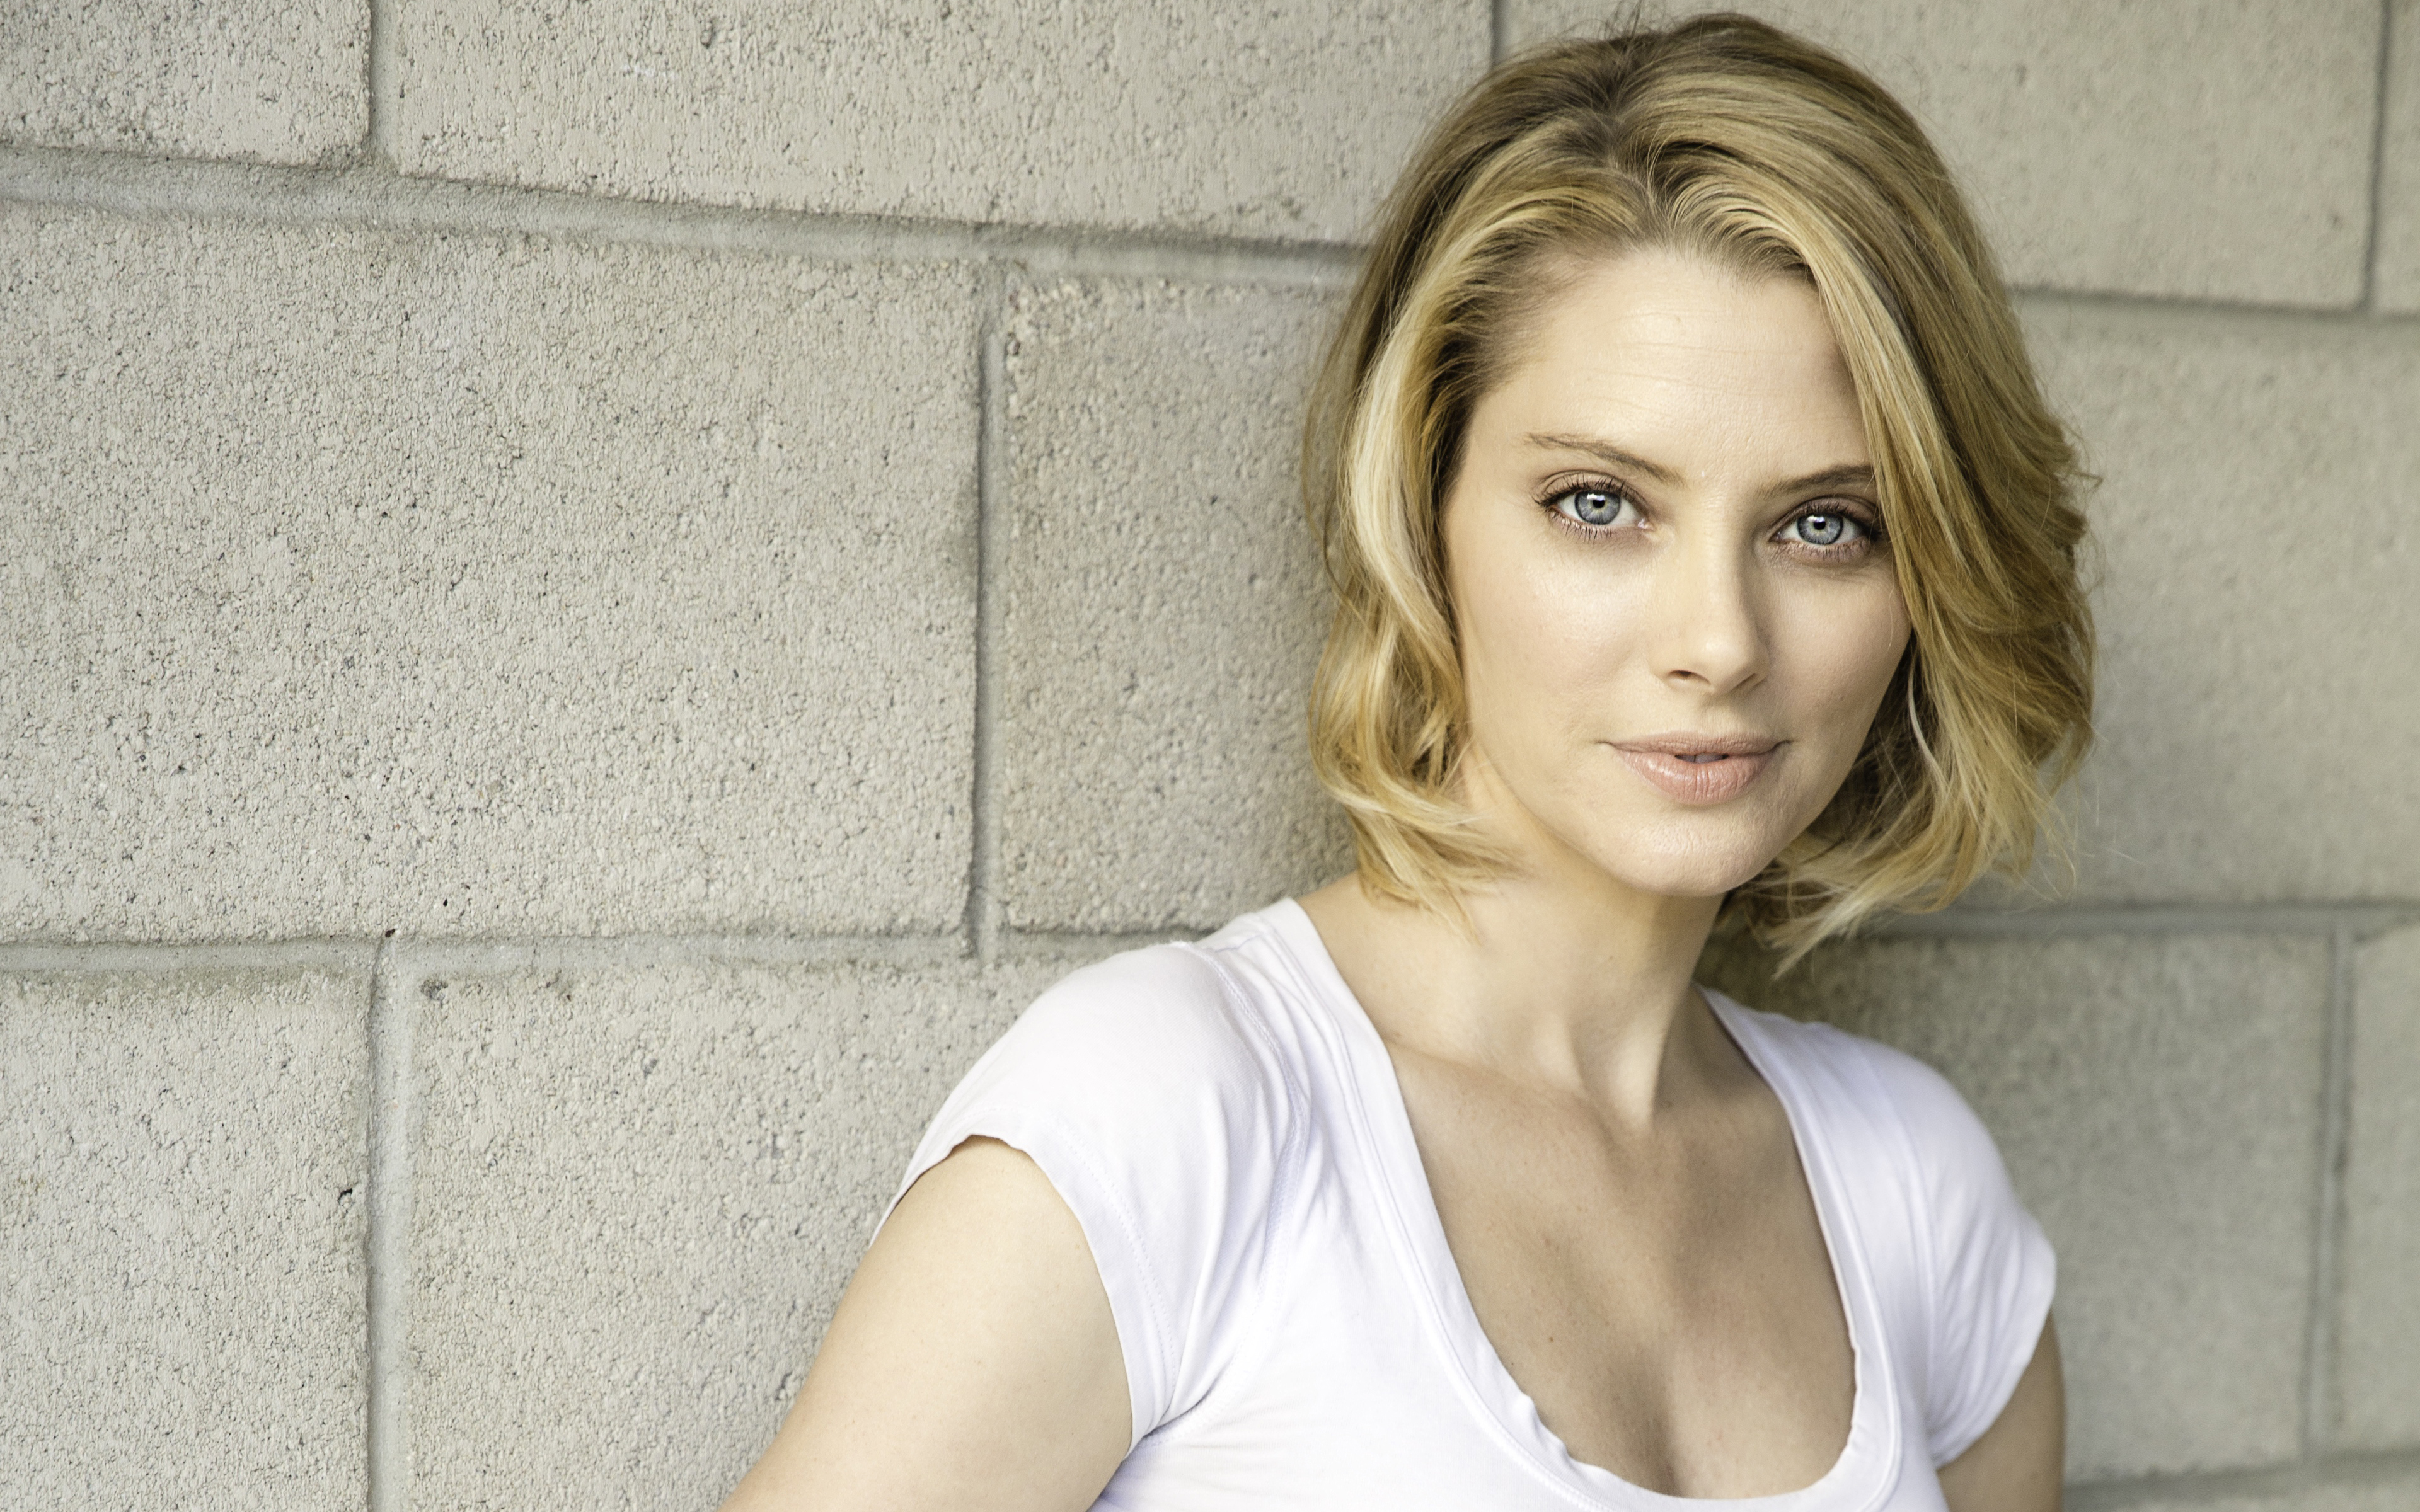 April Bowlby HD Celebrities 4k Wallpapers Images